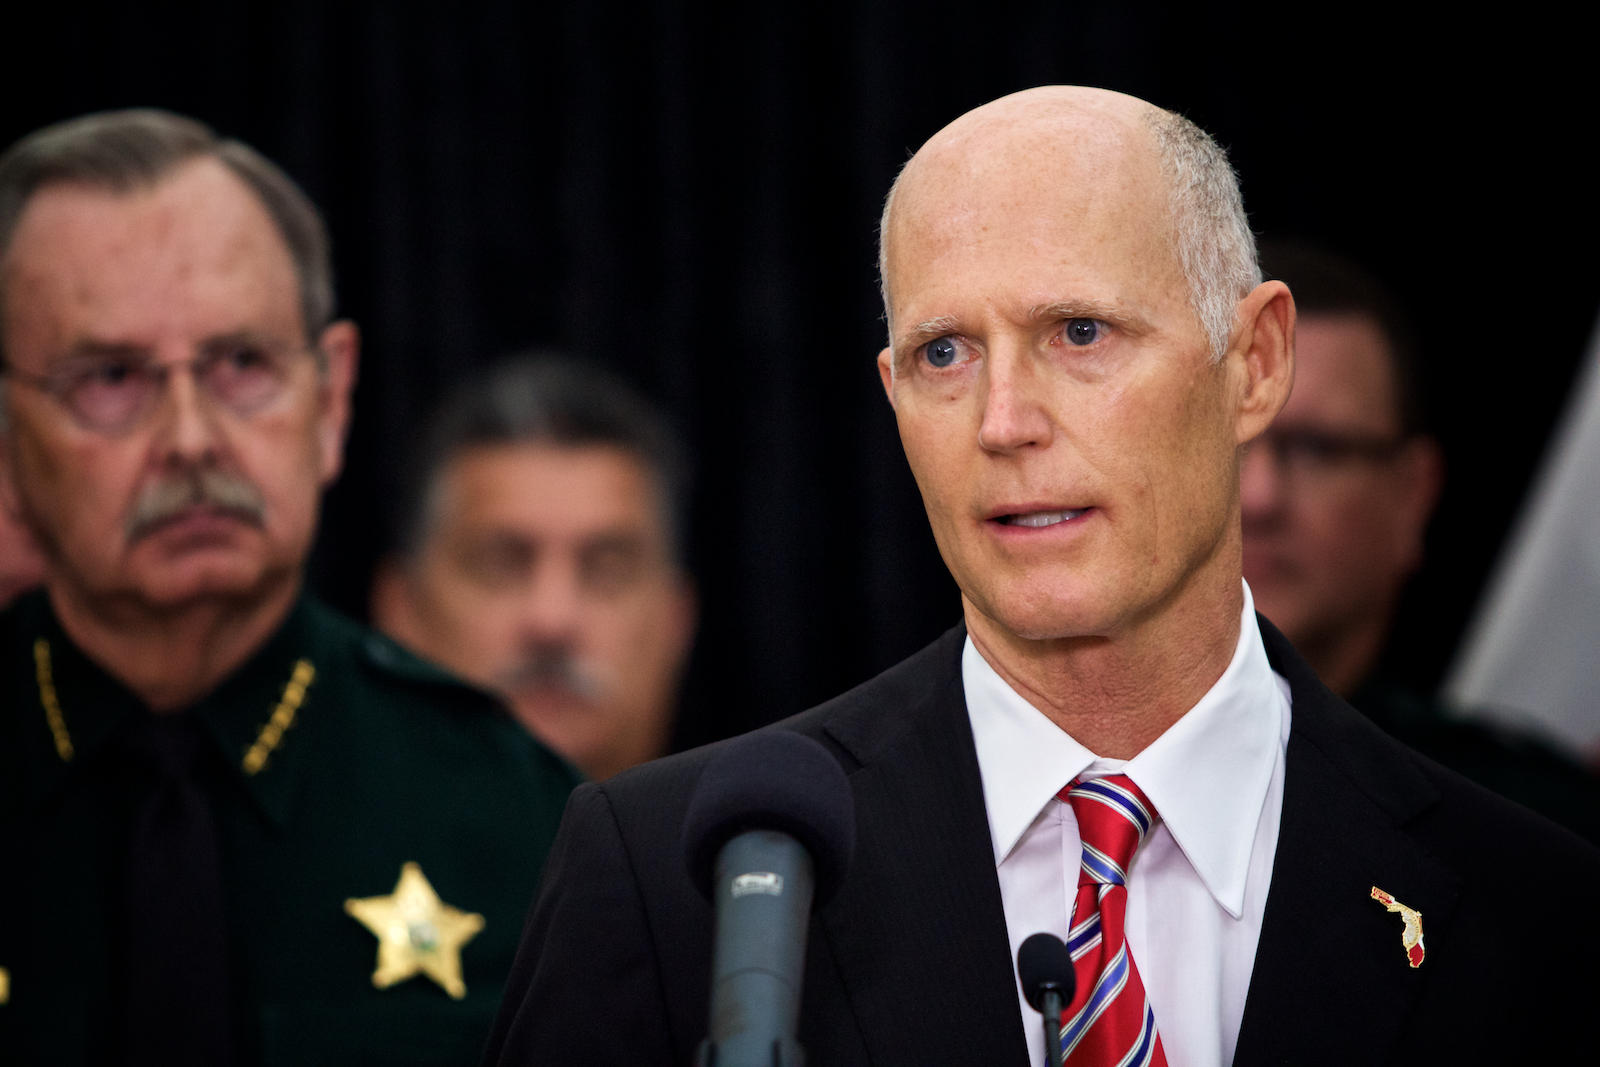 Gov. Rick Scott touts his $500 million school security reform package at the Palm Beach County Sheriff's Office